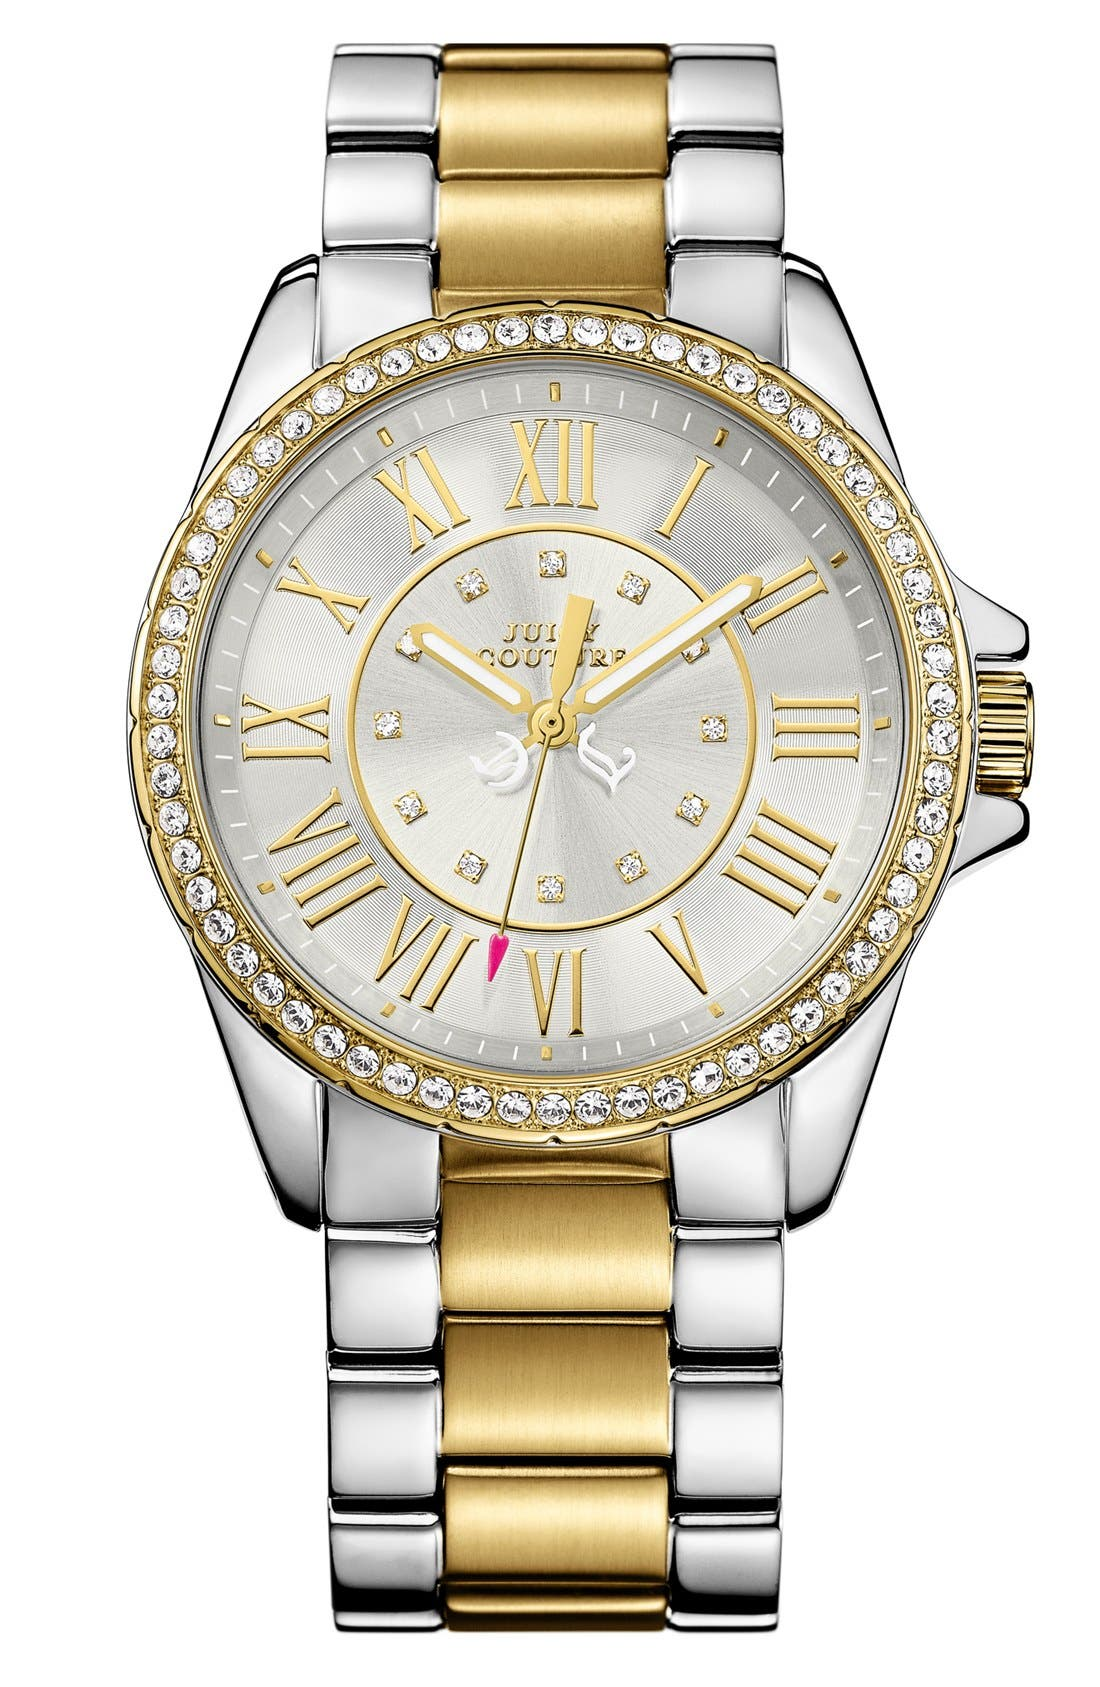 Alternate Image 1 Selected - Juicy Couture 'Stella' Roman Numeral Watch, 40mm